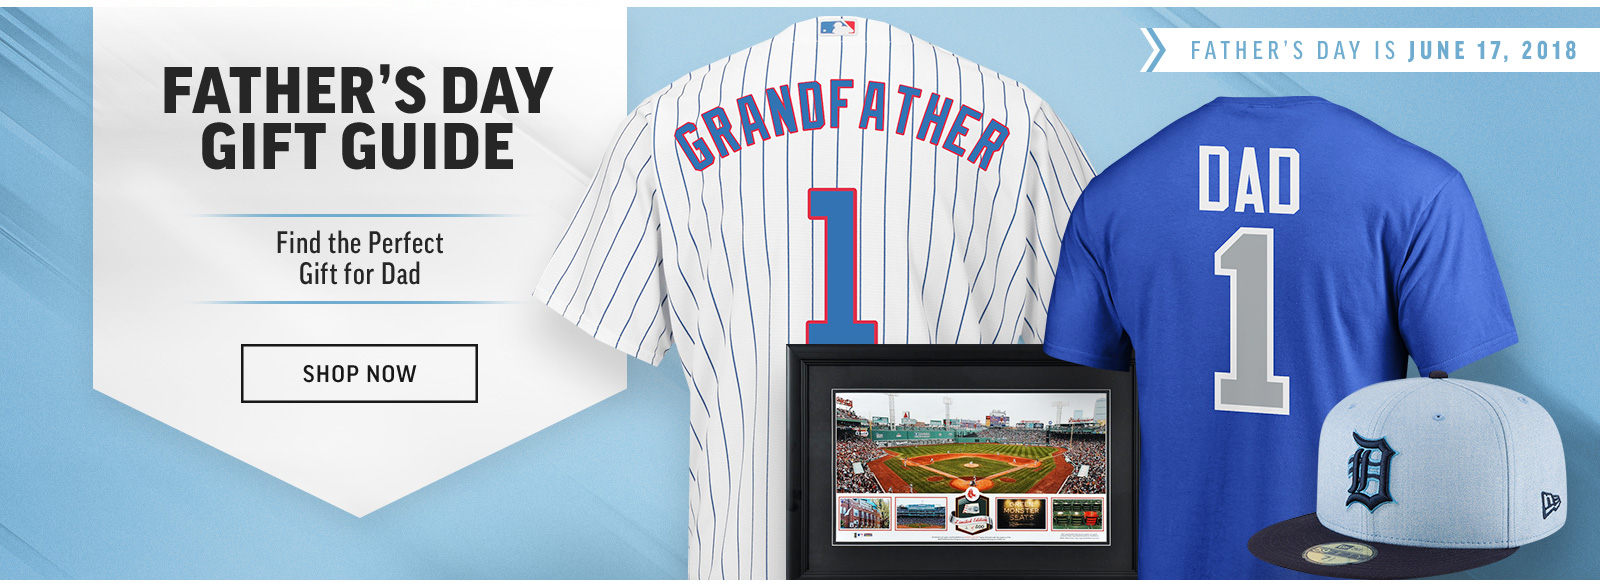 Shop Father's Day Gift Guide